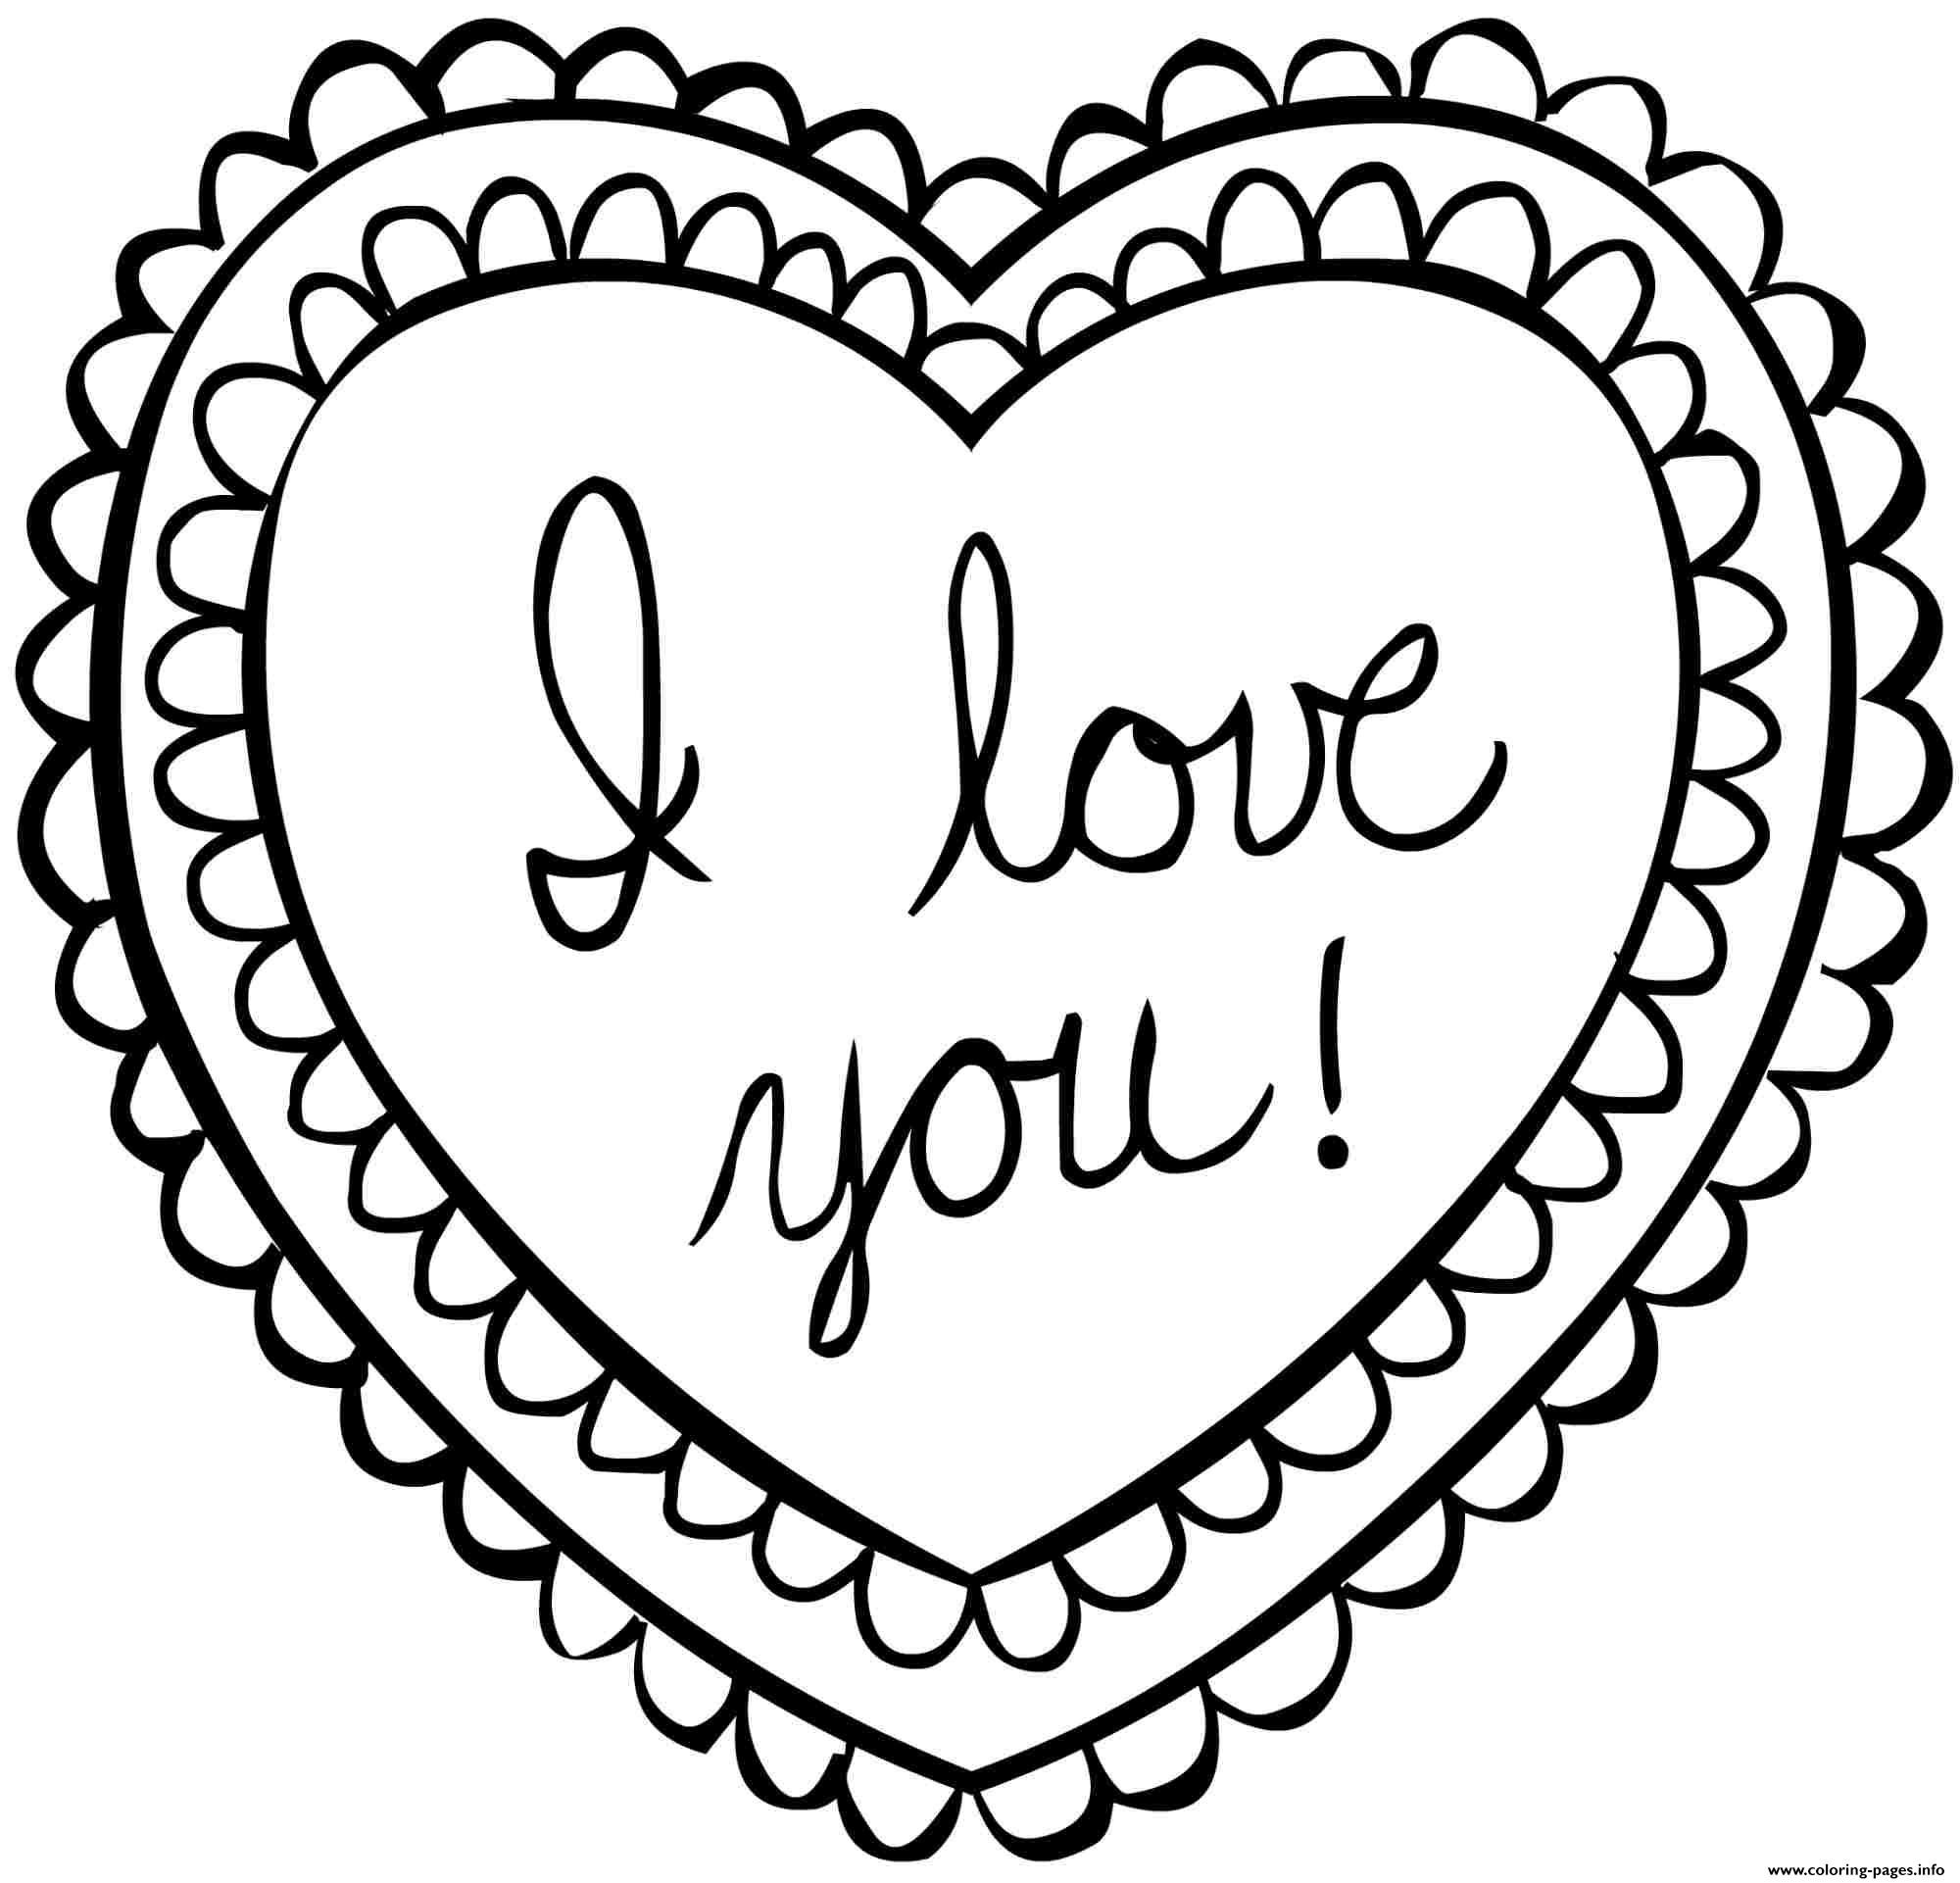 Valentine Card Coloring Pages at GetDrawings.com   Free for personal ...